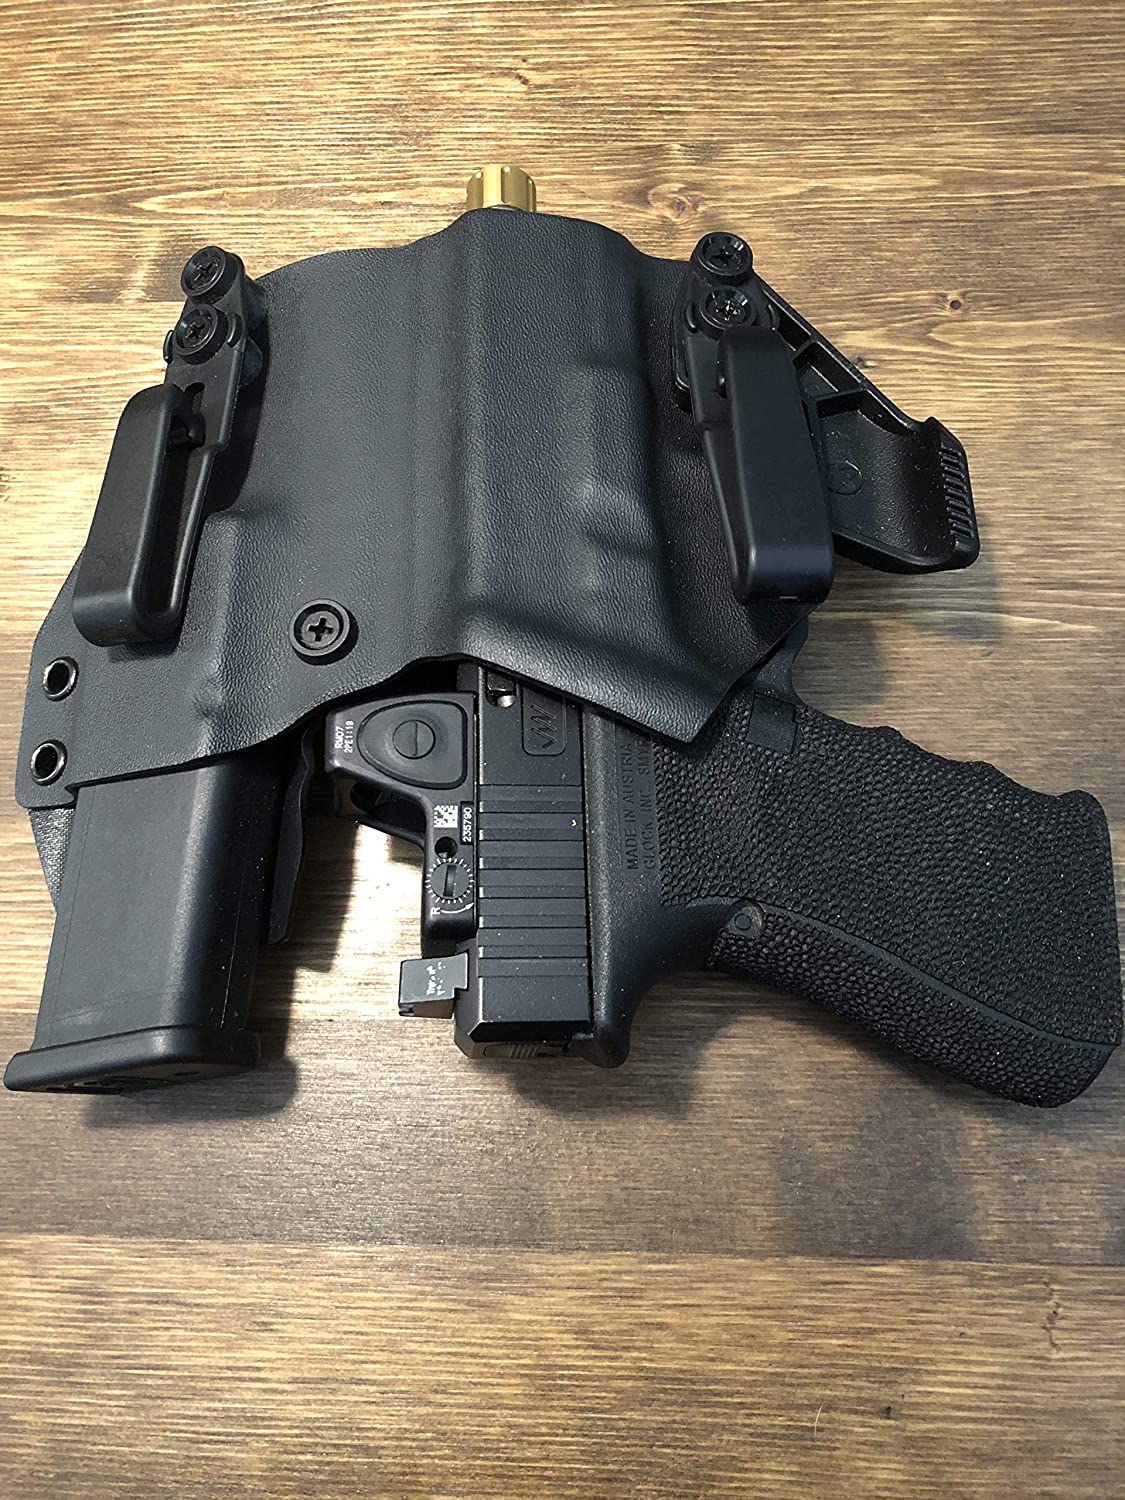 Amazon com : IronXHolsters Glock 19 23 32 17 26 IWB Appendix